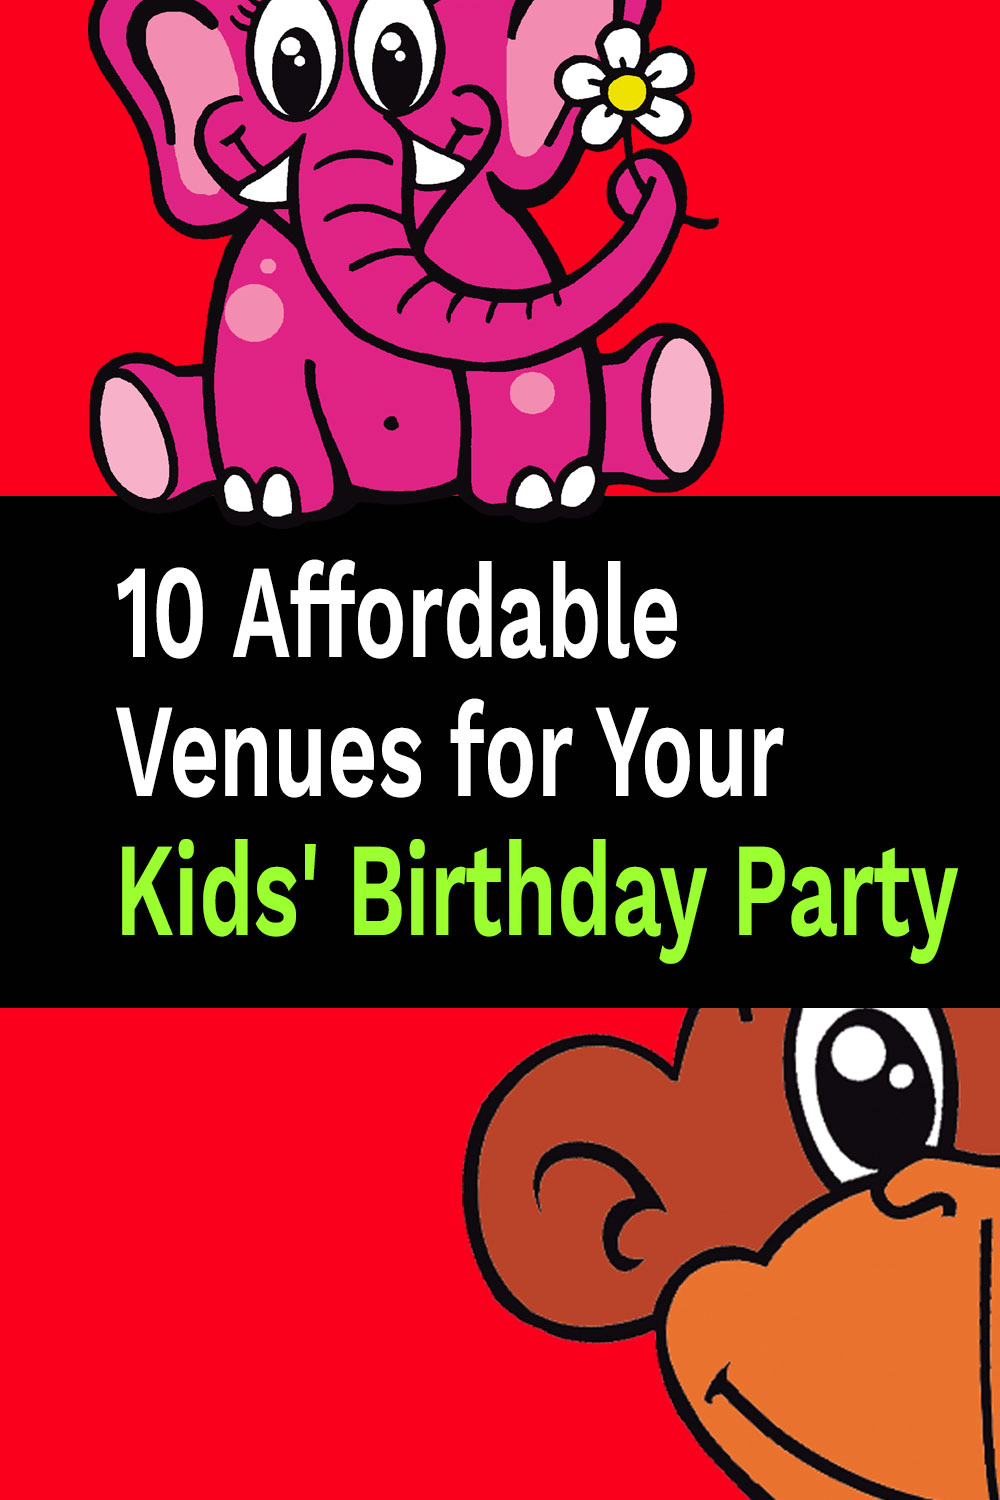 10 Affordable Venues for Your Kids' Birthday Party